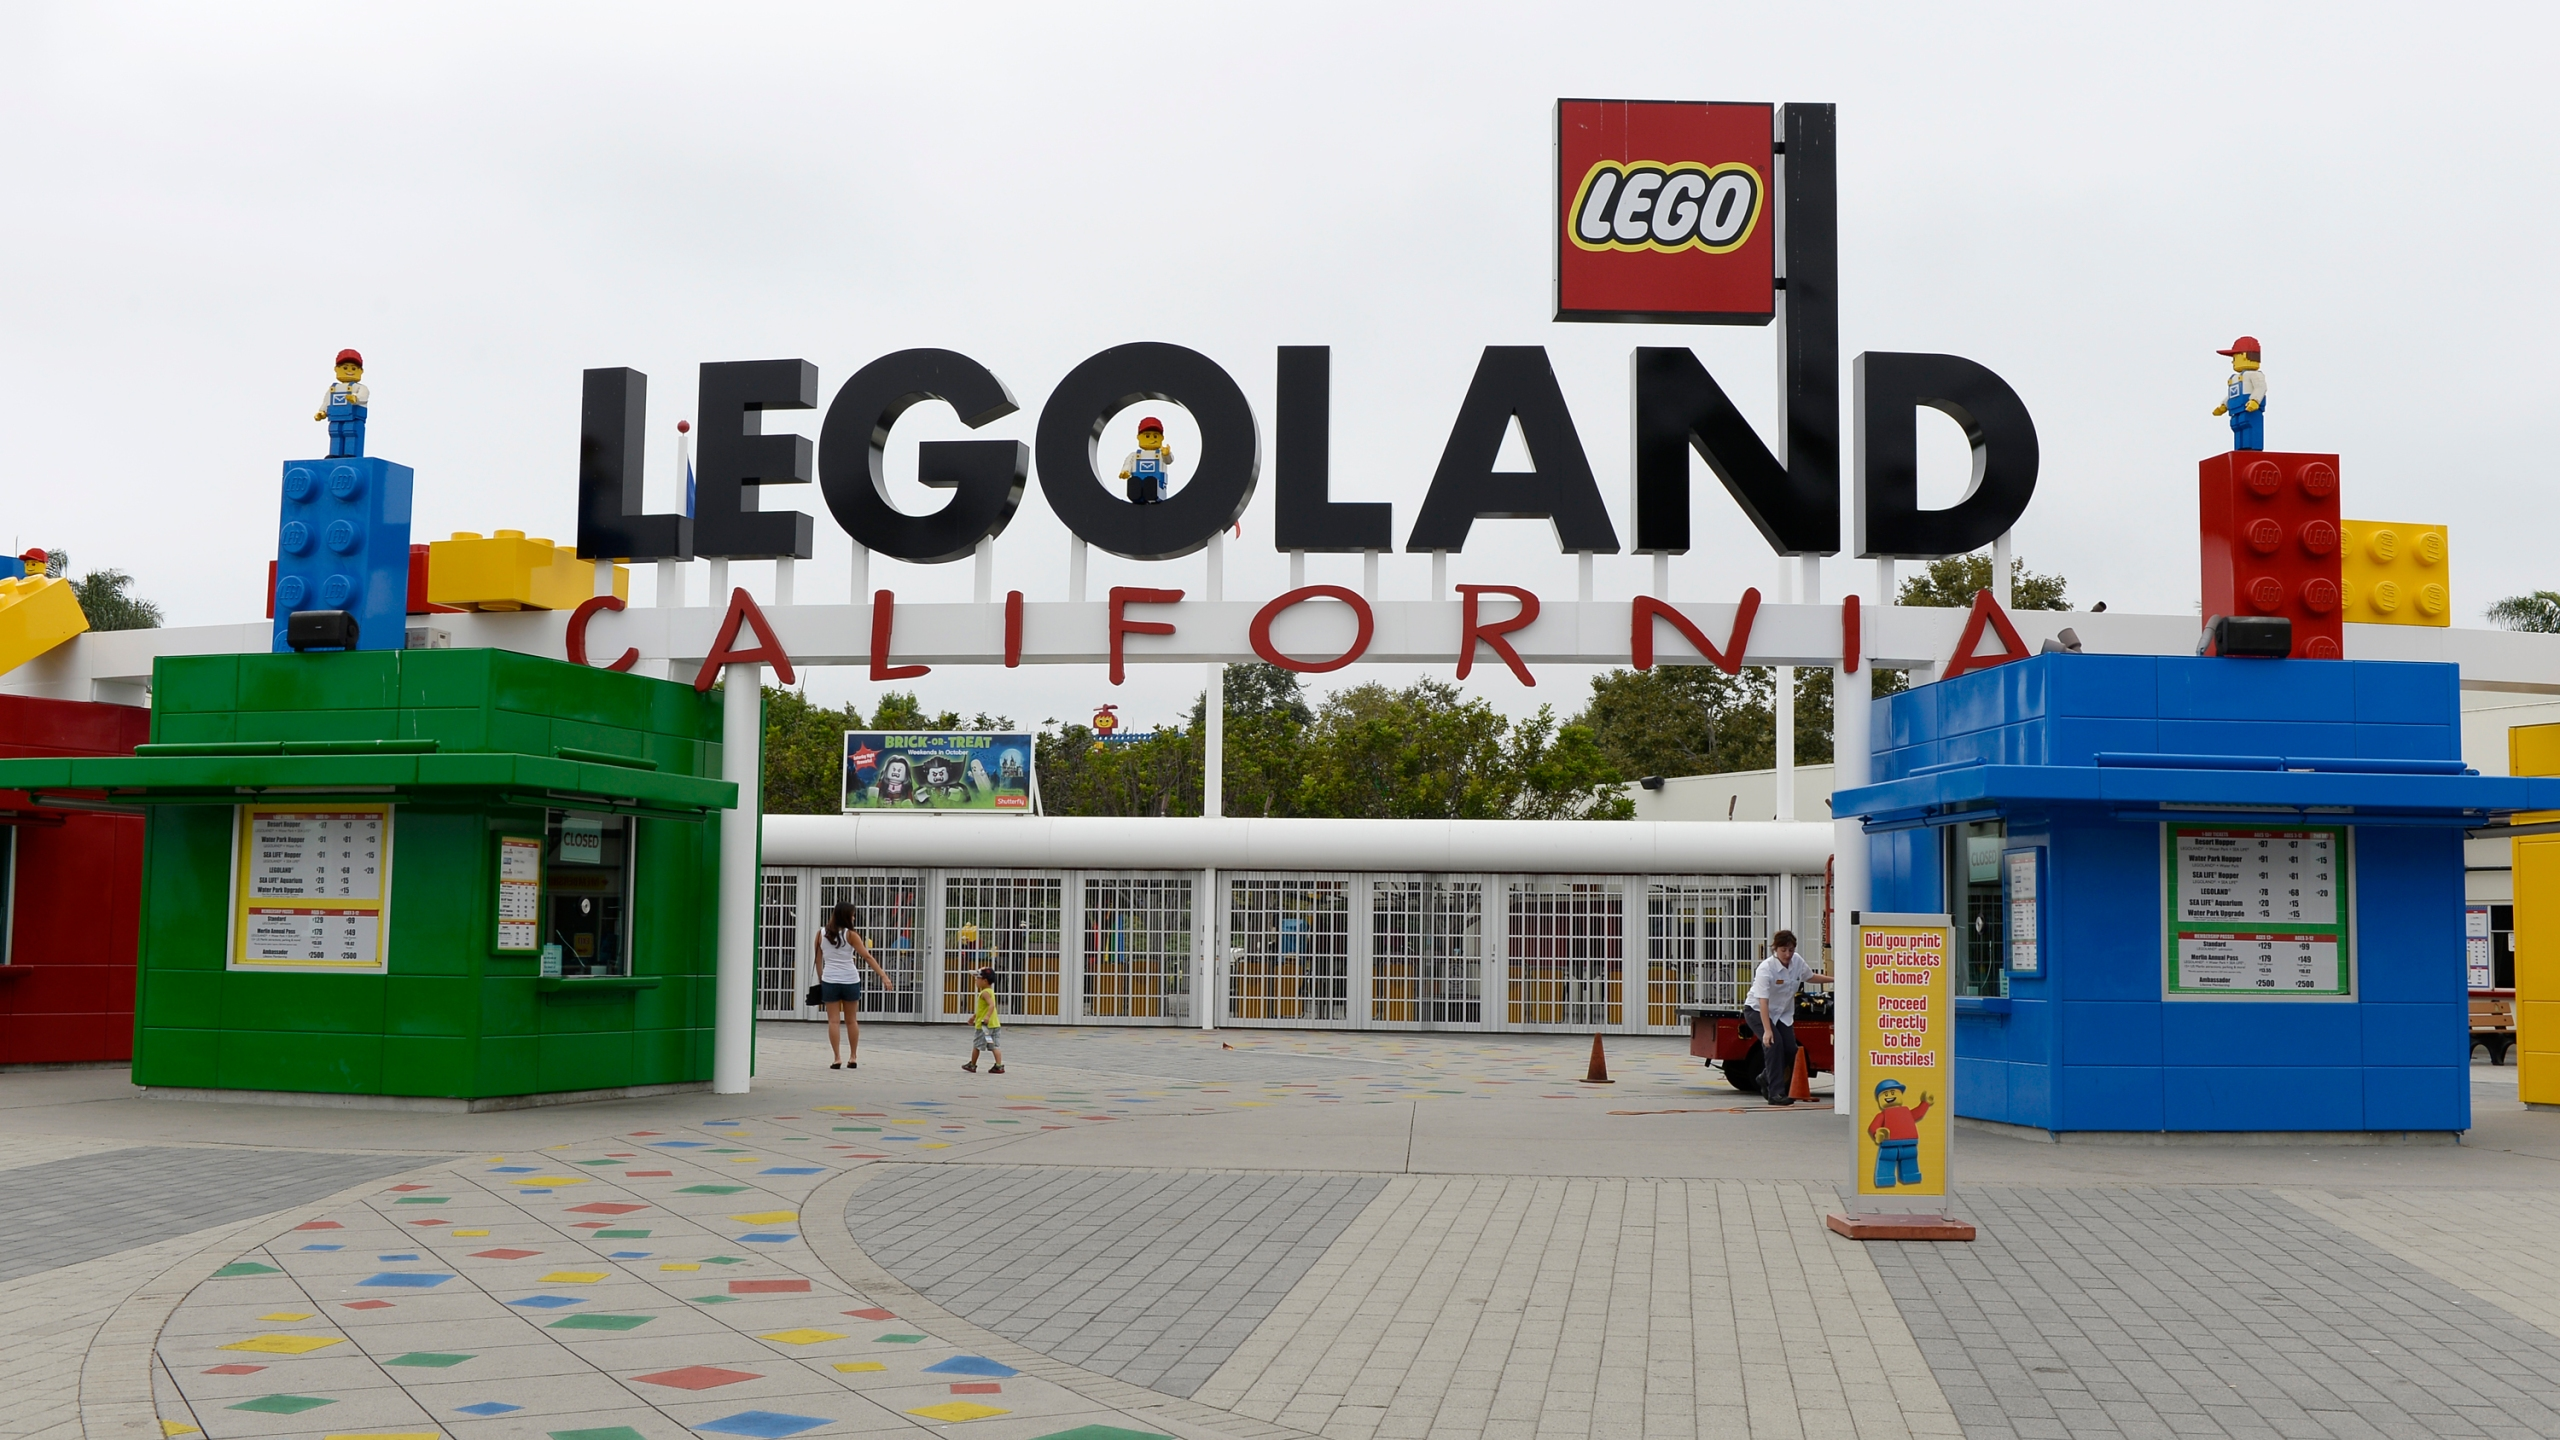 The entrance to Legoland California theme park next to North America's first ever Legoland Hotel at Legoland on Sept. 17, 2013, in Carlsbad. (Credit: Kevork Djansezian/Getty Images)